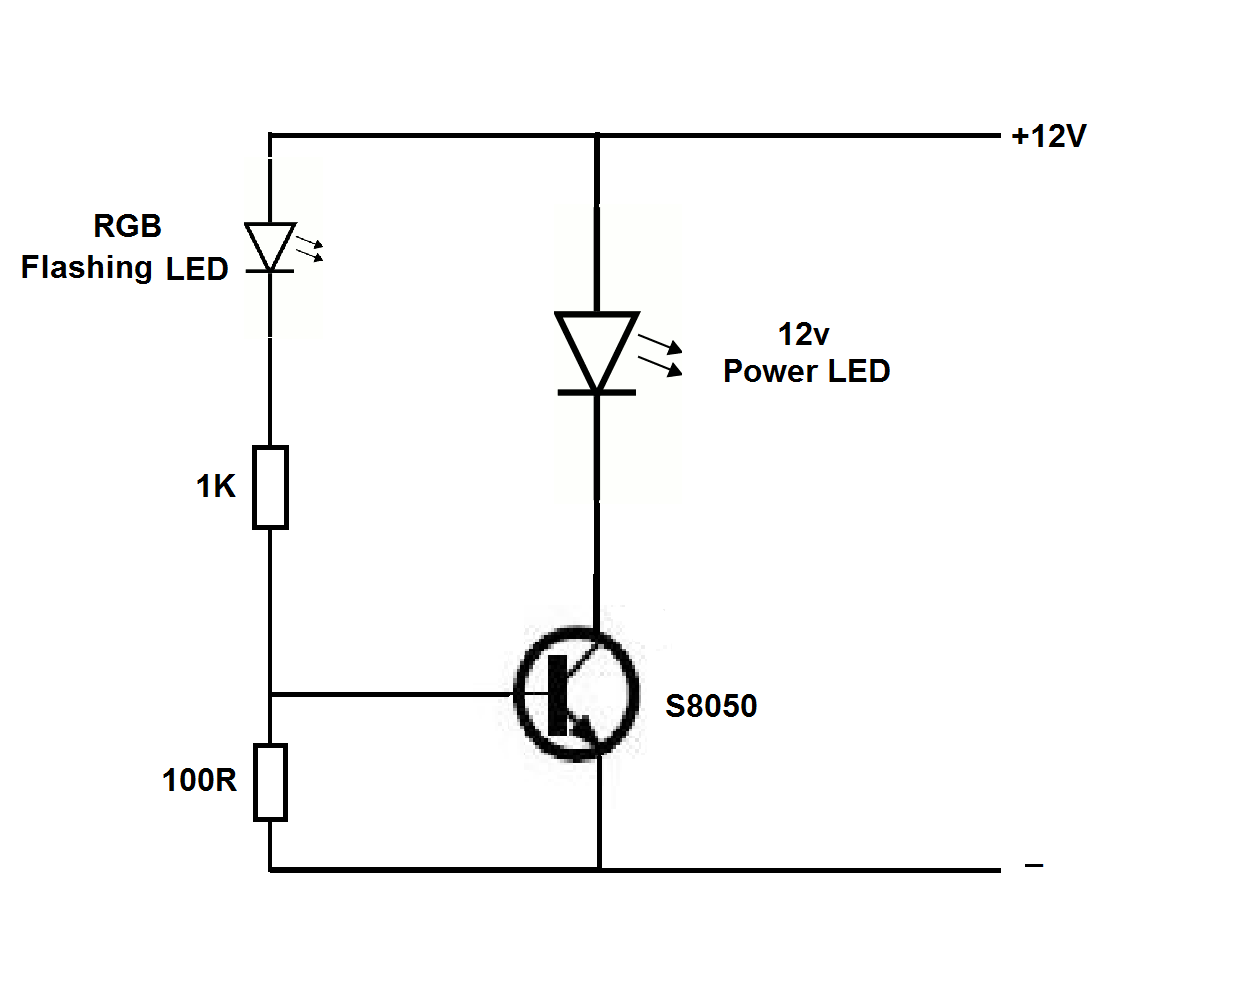 flasher%2Busing%2Bflashing%2BLED 12v power led flasher circuit using rgb flashing led ~ simple projects 12v flasher circuit diagram at sewacar.co